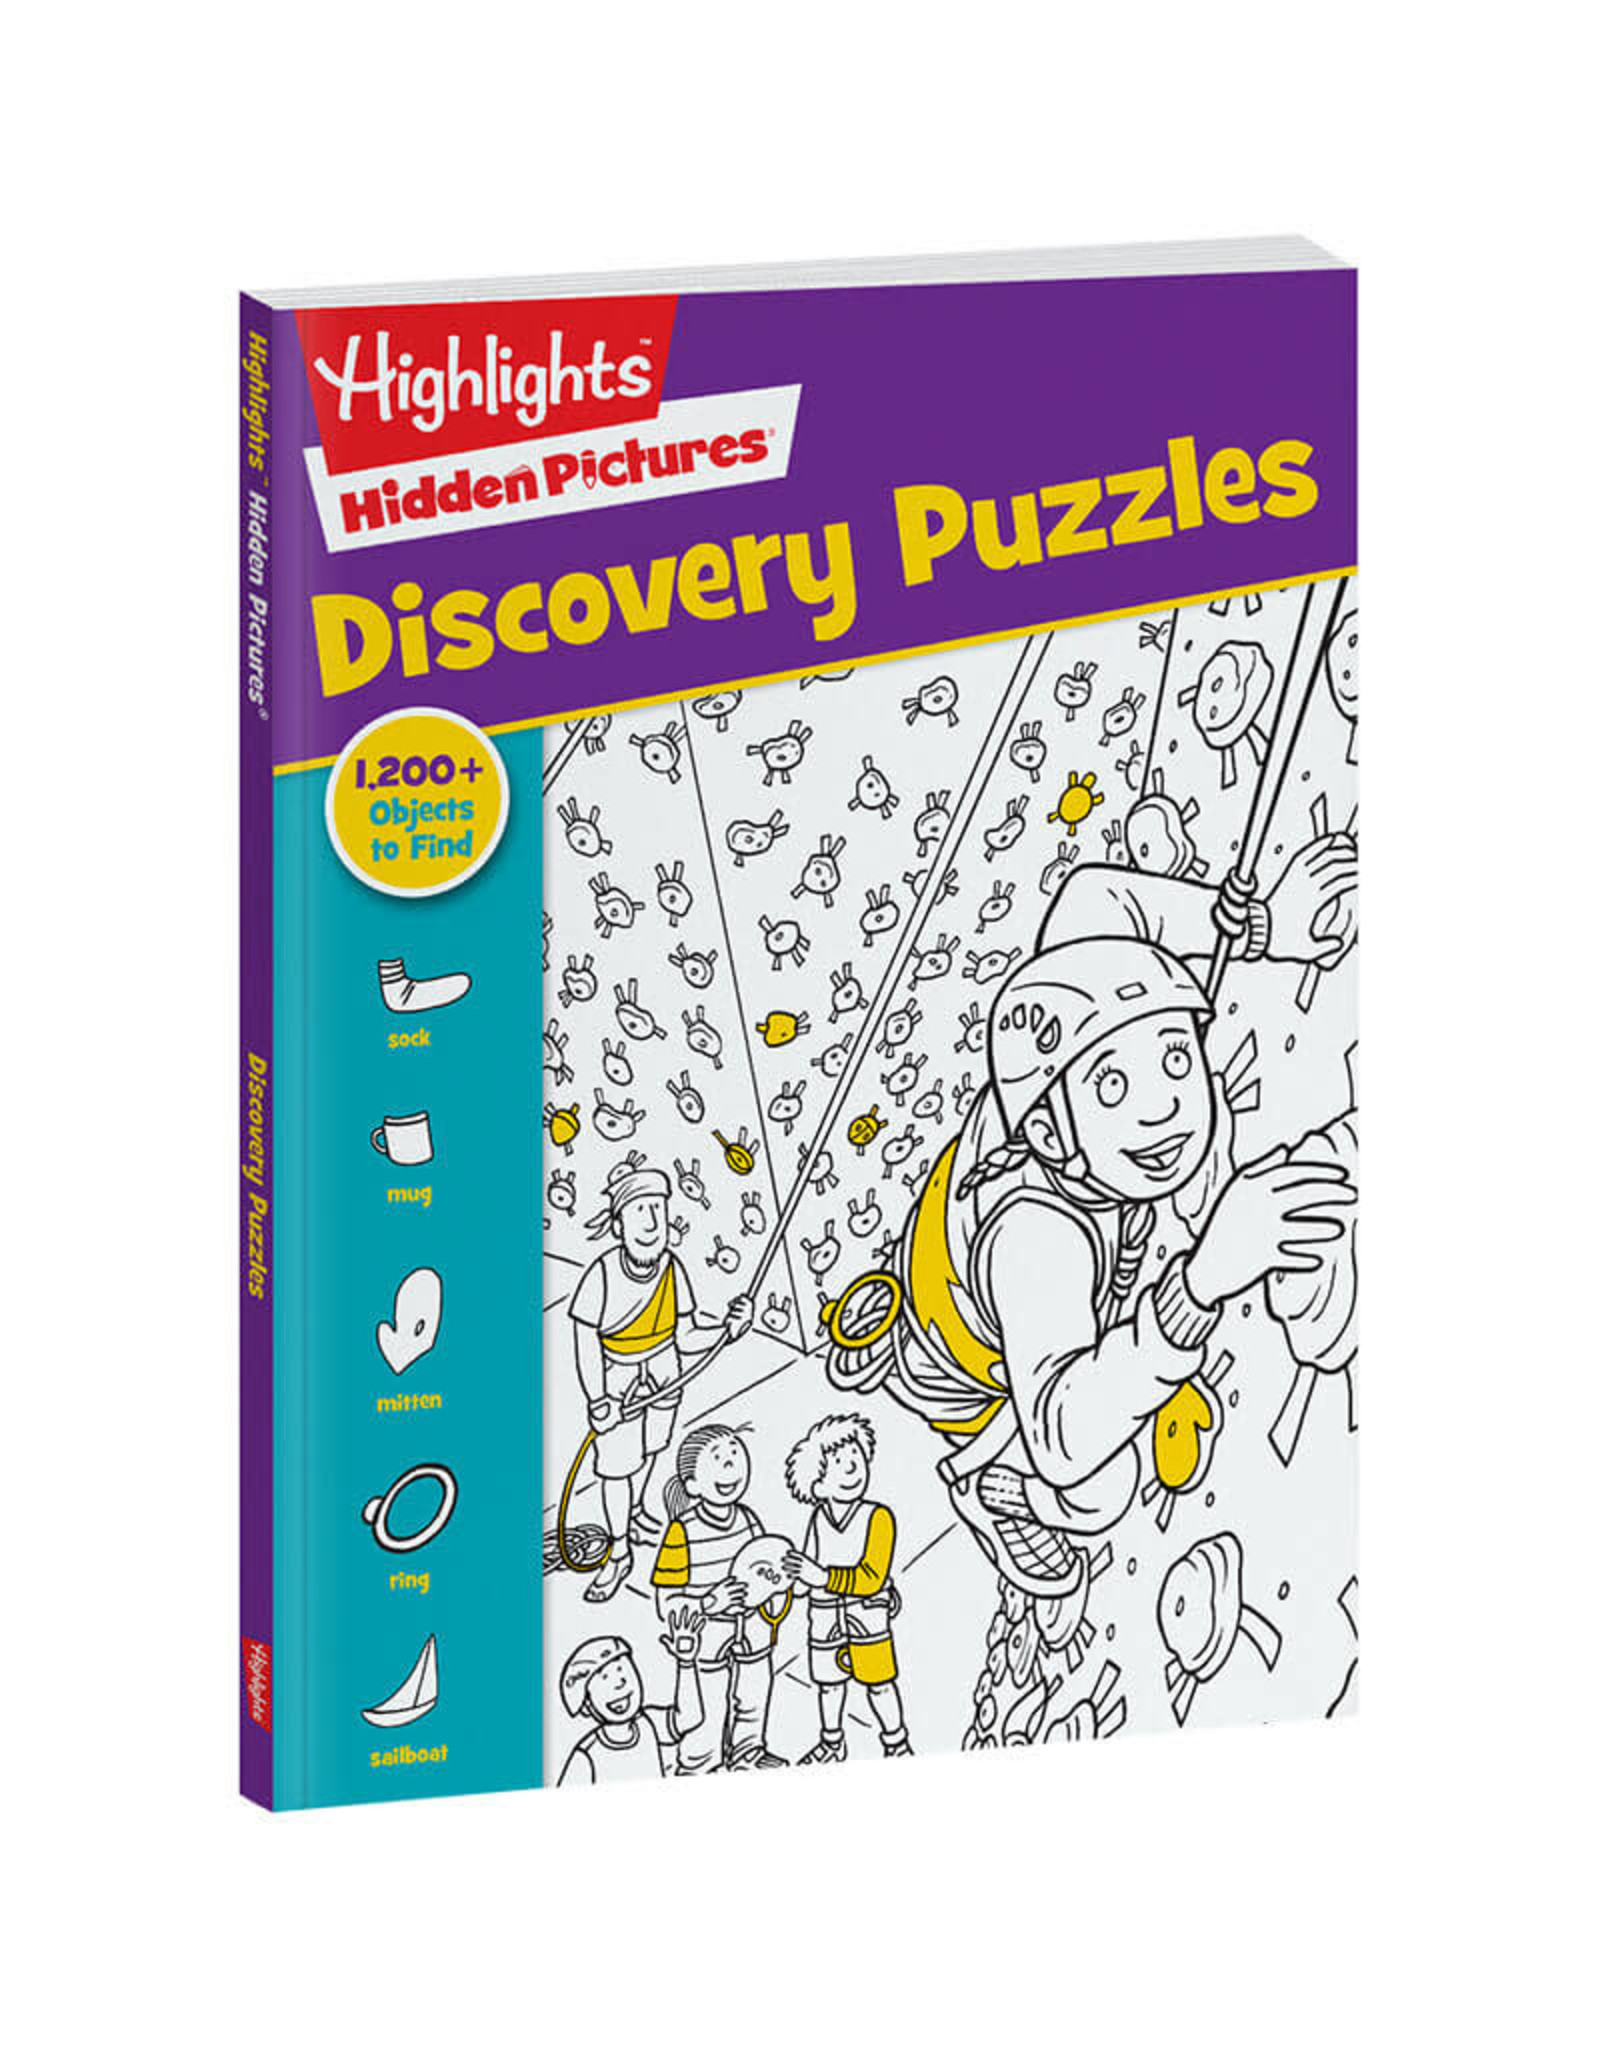 Highlights Highlights Hidden Pictures Discovery Puzzles